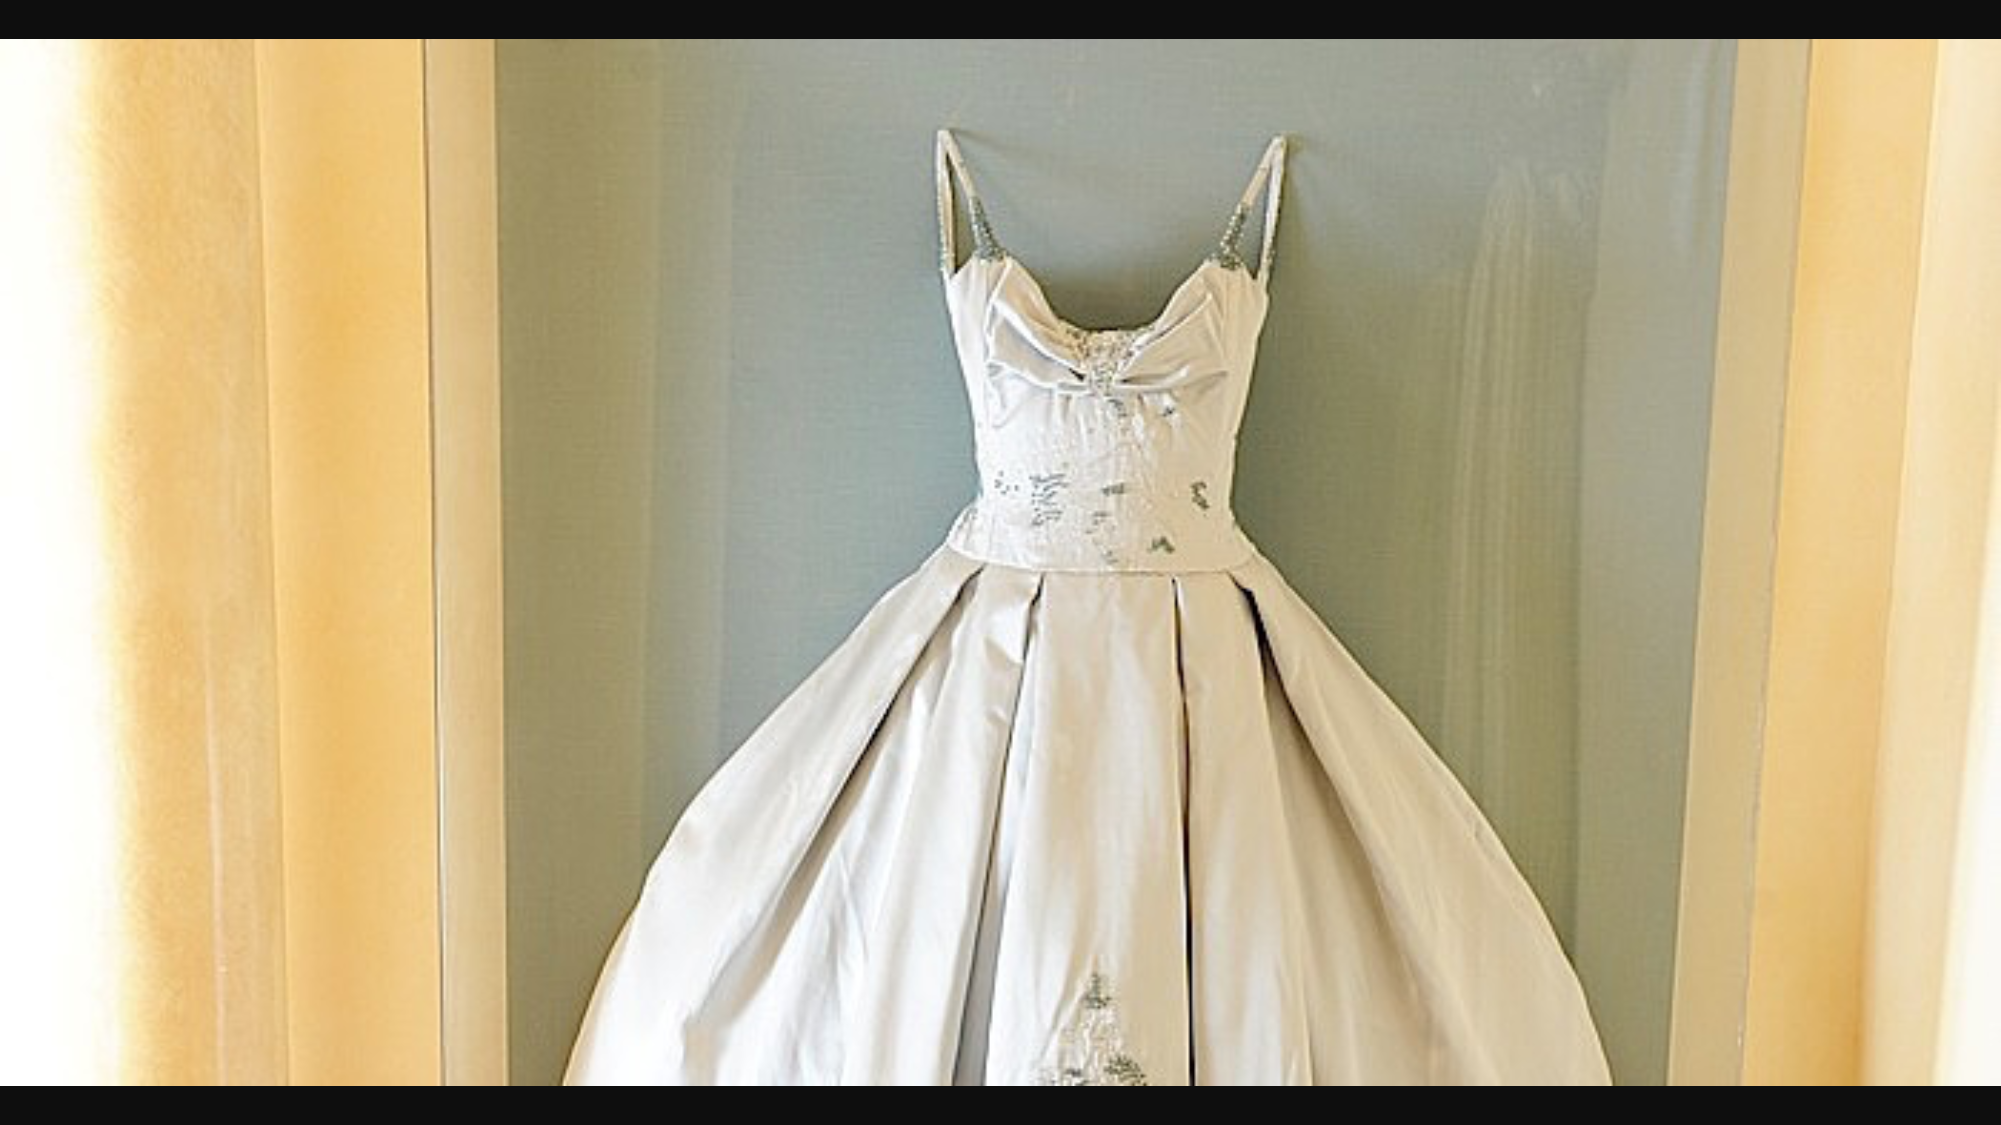 Adrienne maloofs wedding dress from housewives of Beverly Hills ...